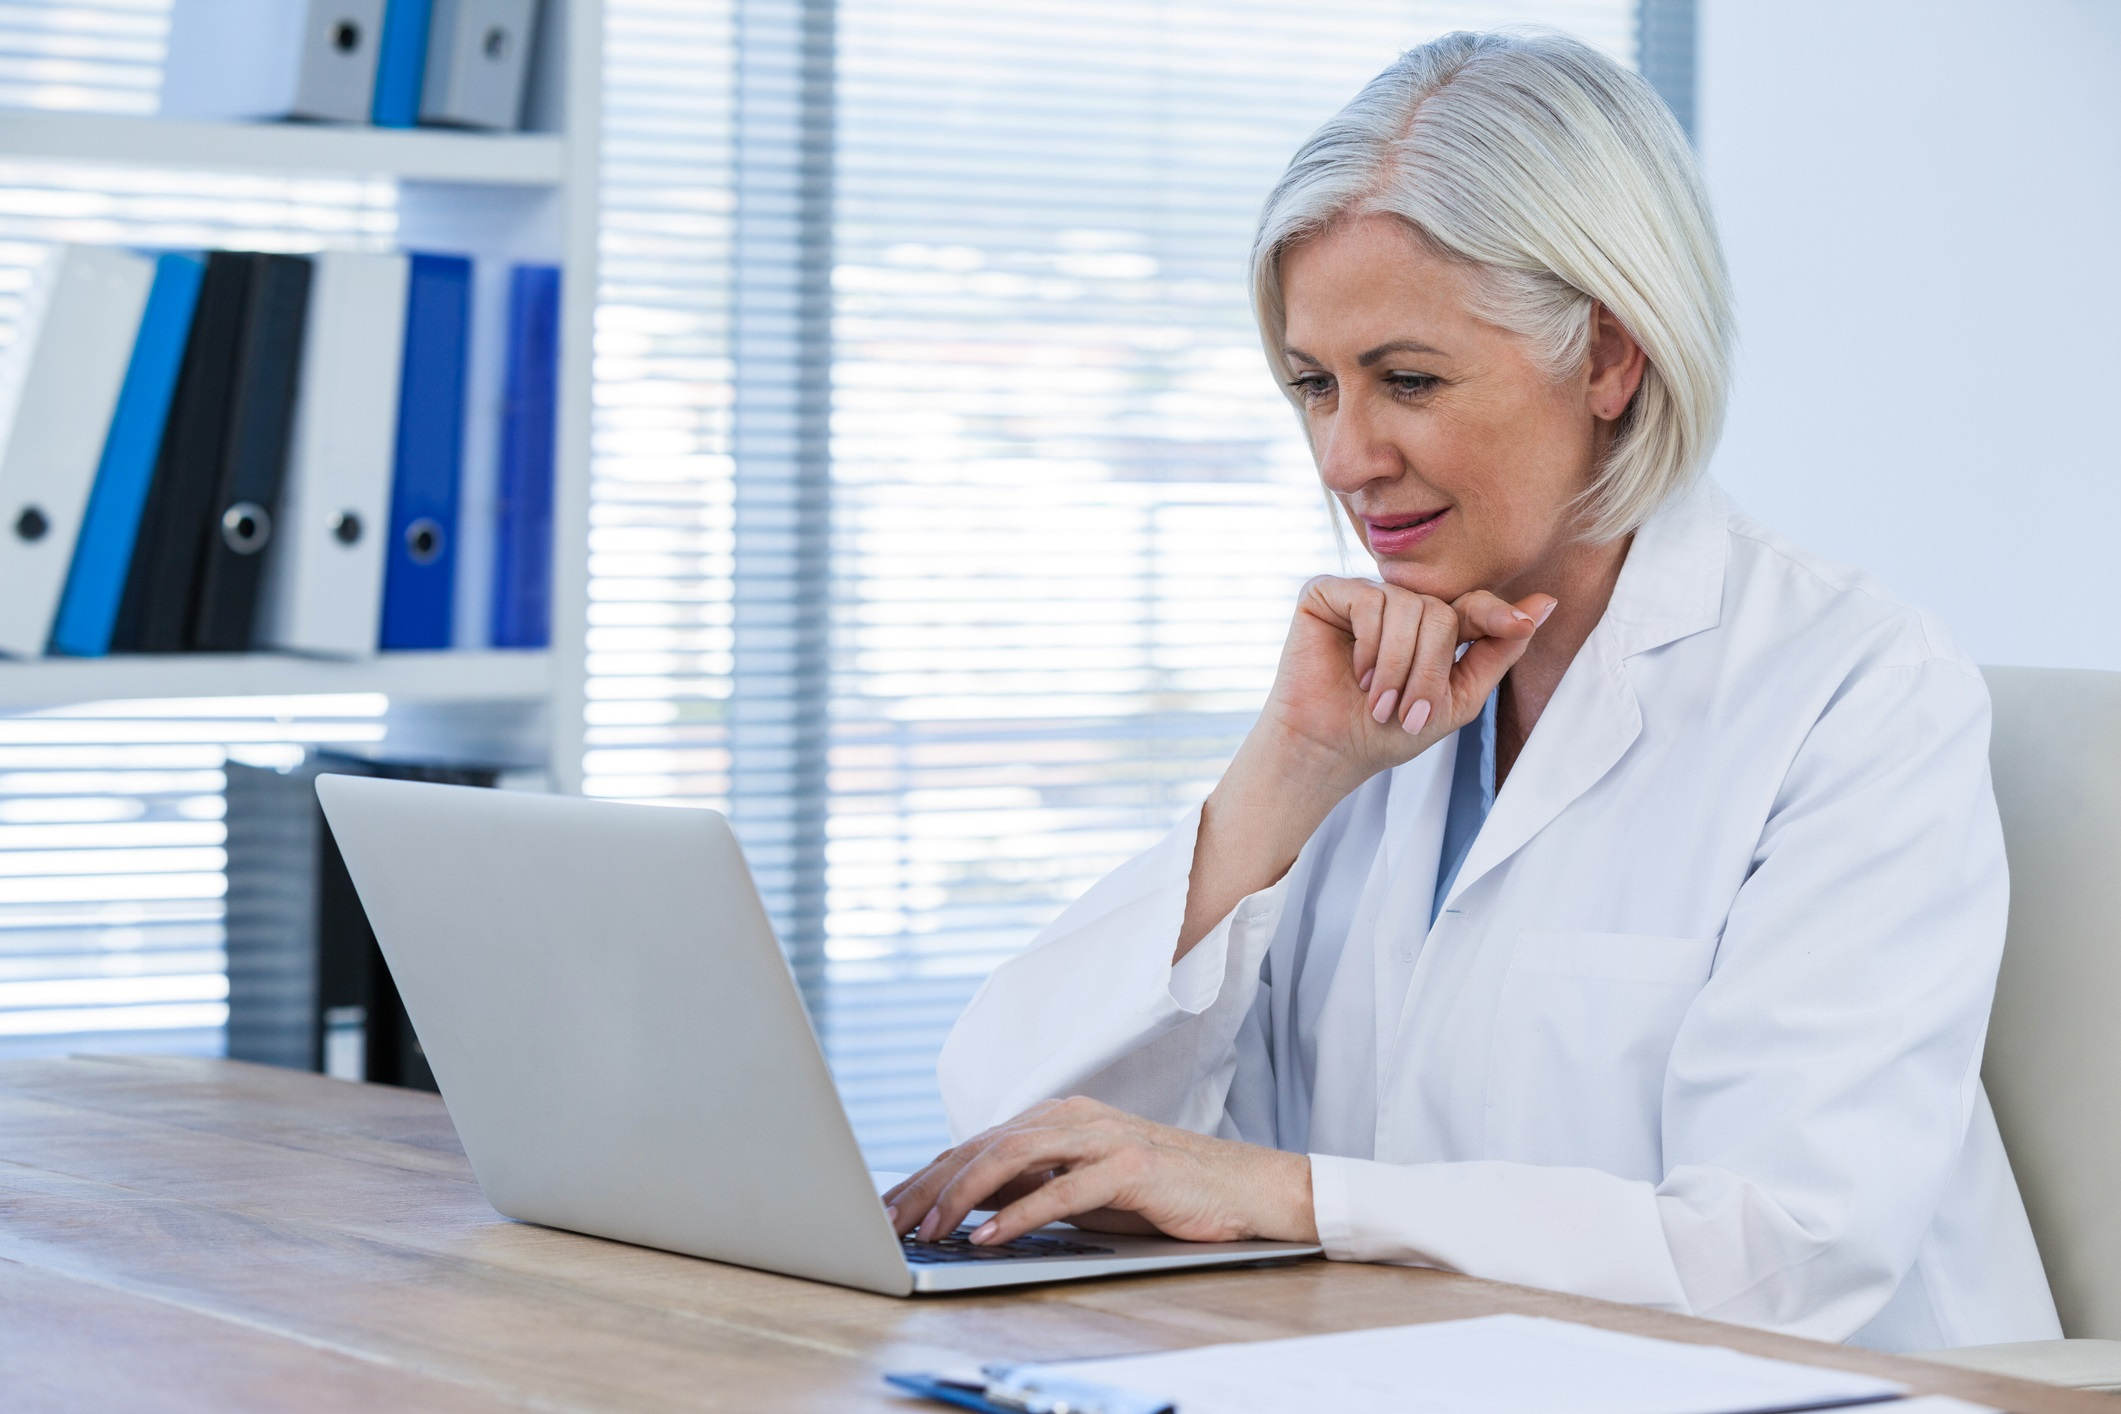 Thoughtful female doctor working on her laptop in clinic